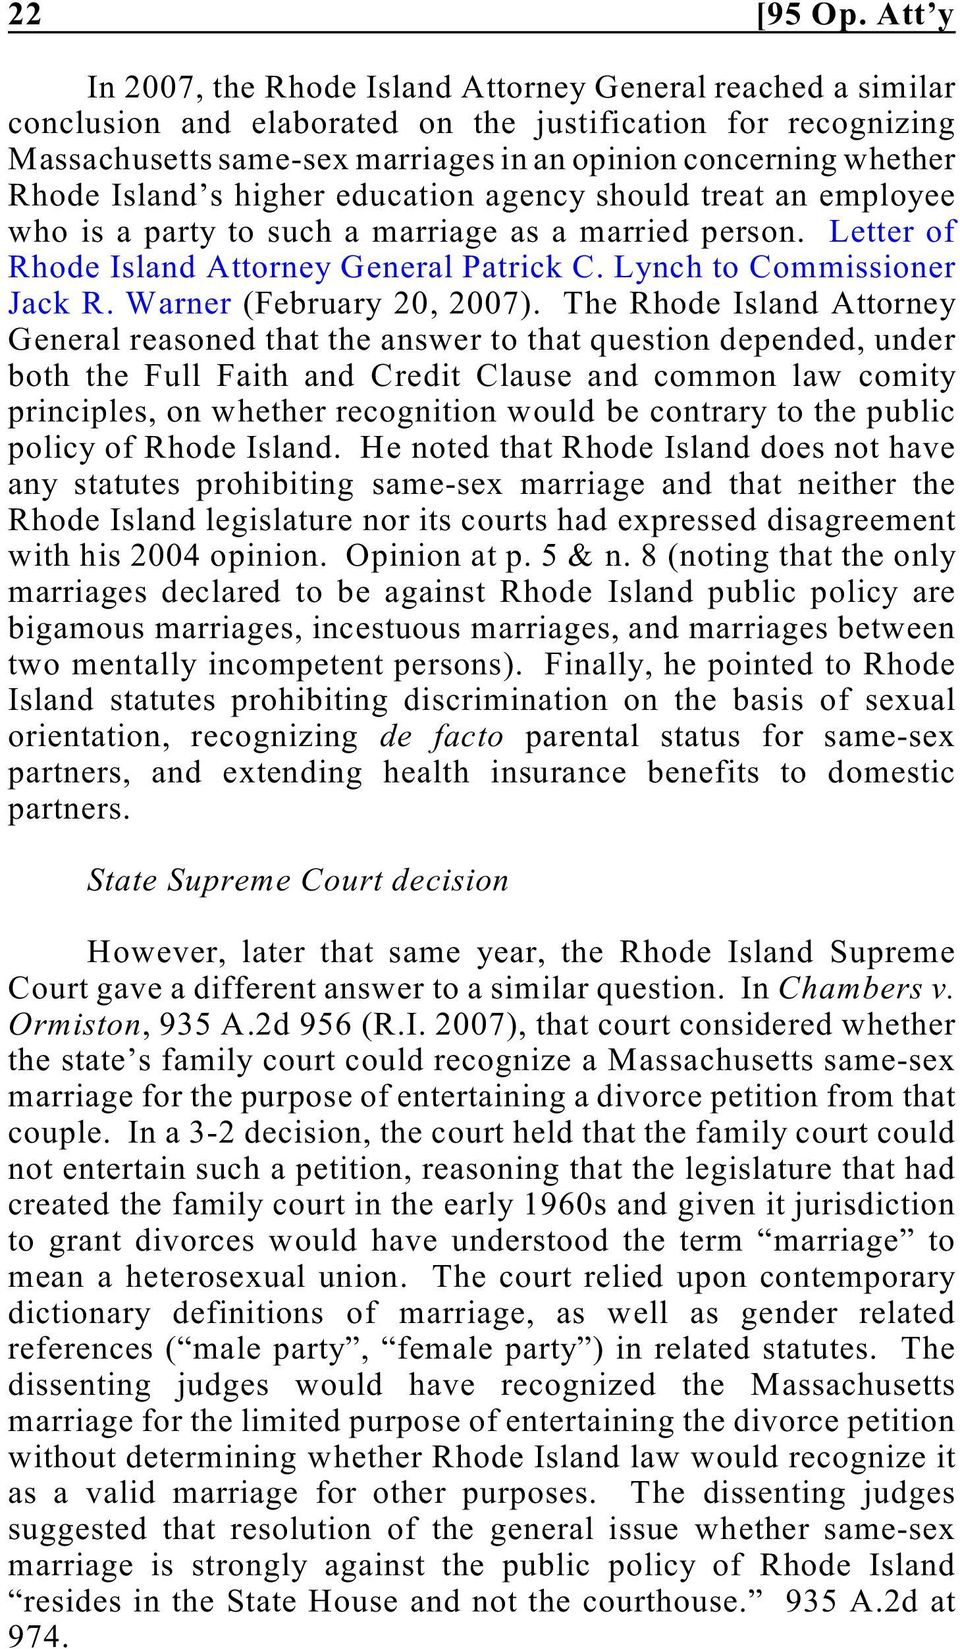 Rhode Island s higher education agency should treat an employee who is a party to such a marriage as a married person. Letter of Rhode Island Attorney General Patrick C. Lynch to Commissioner Jack R.